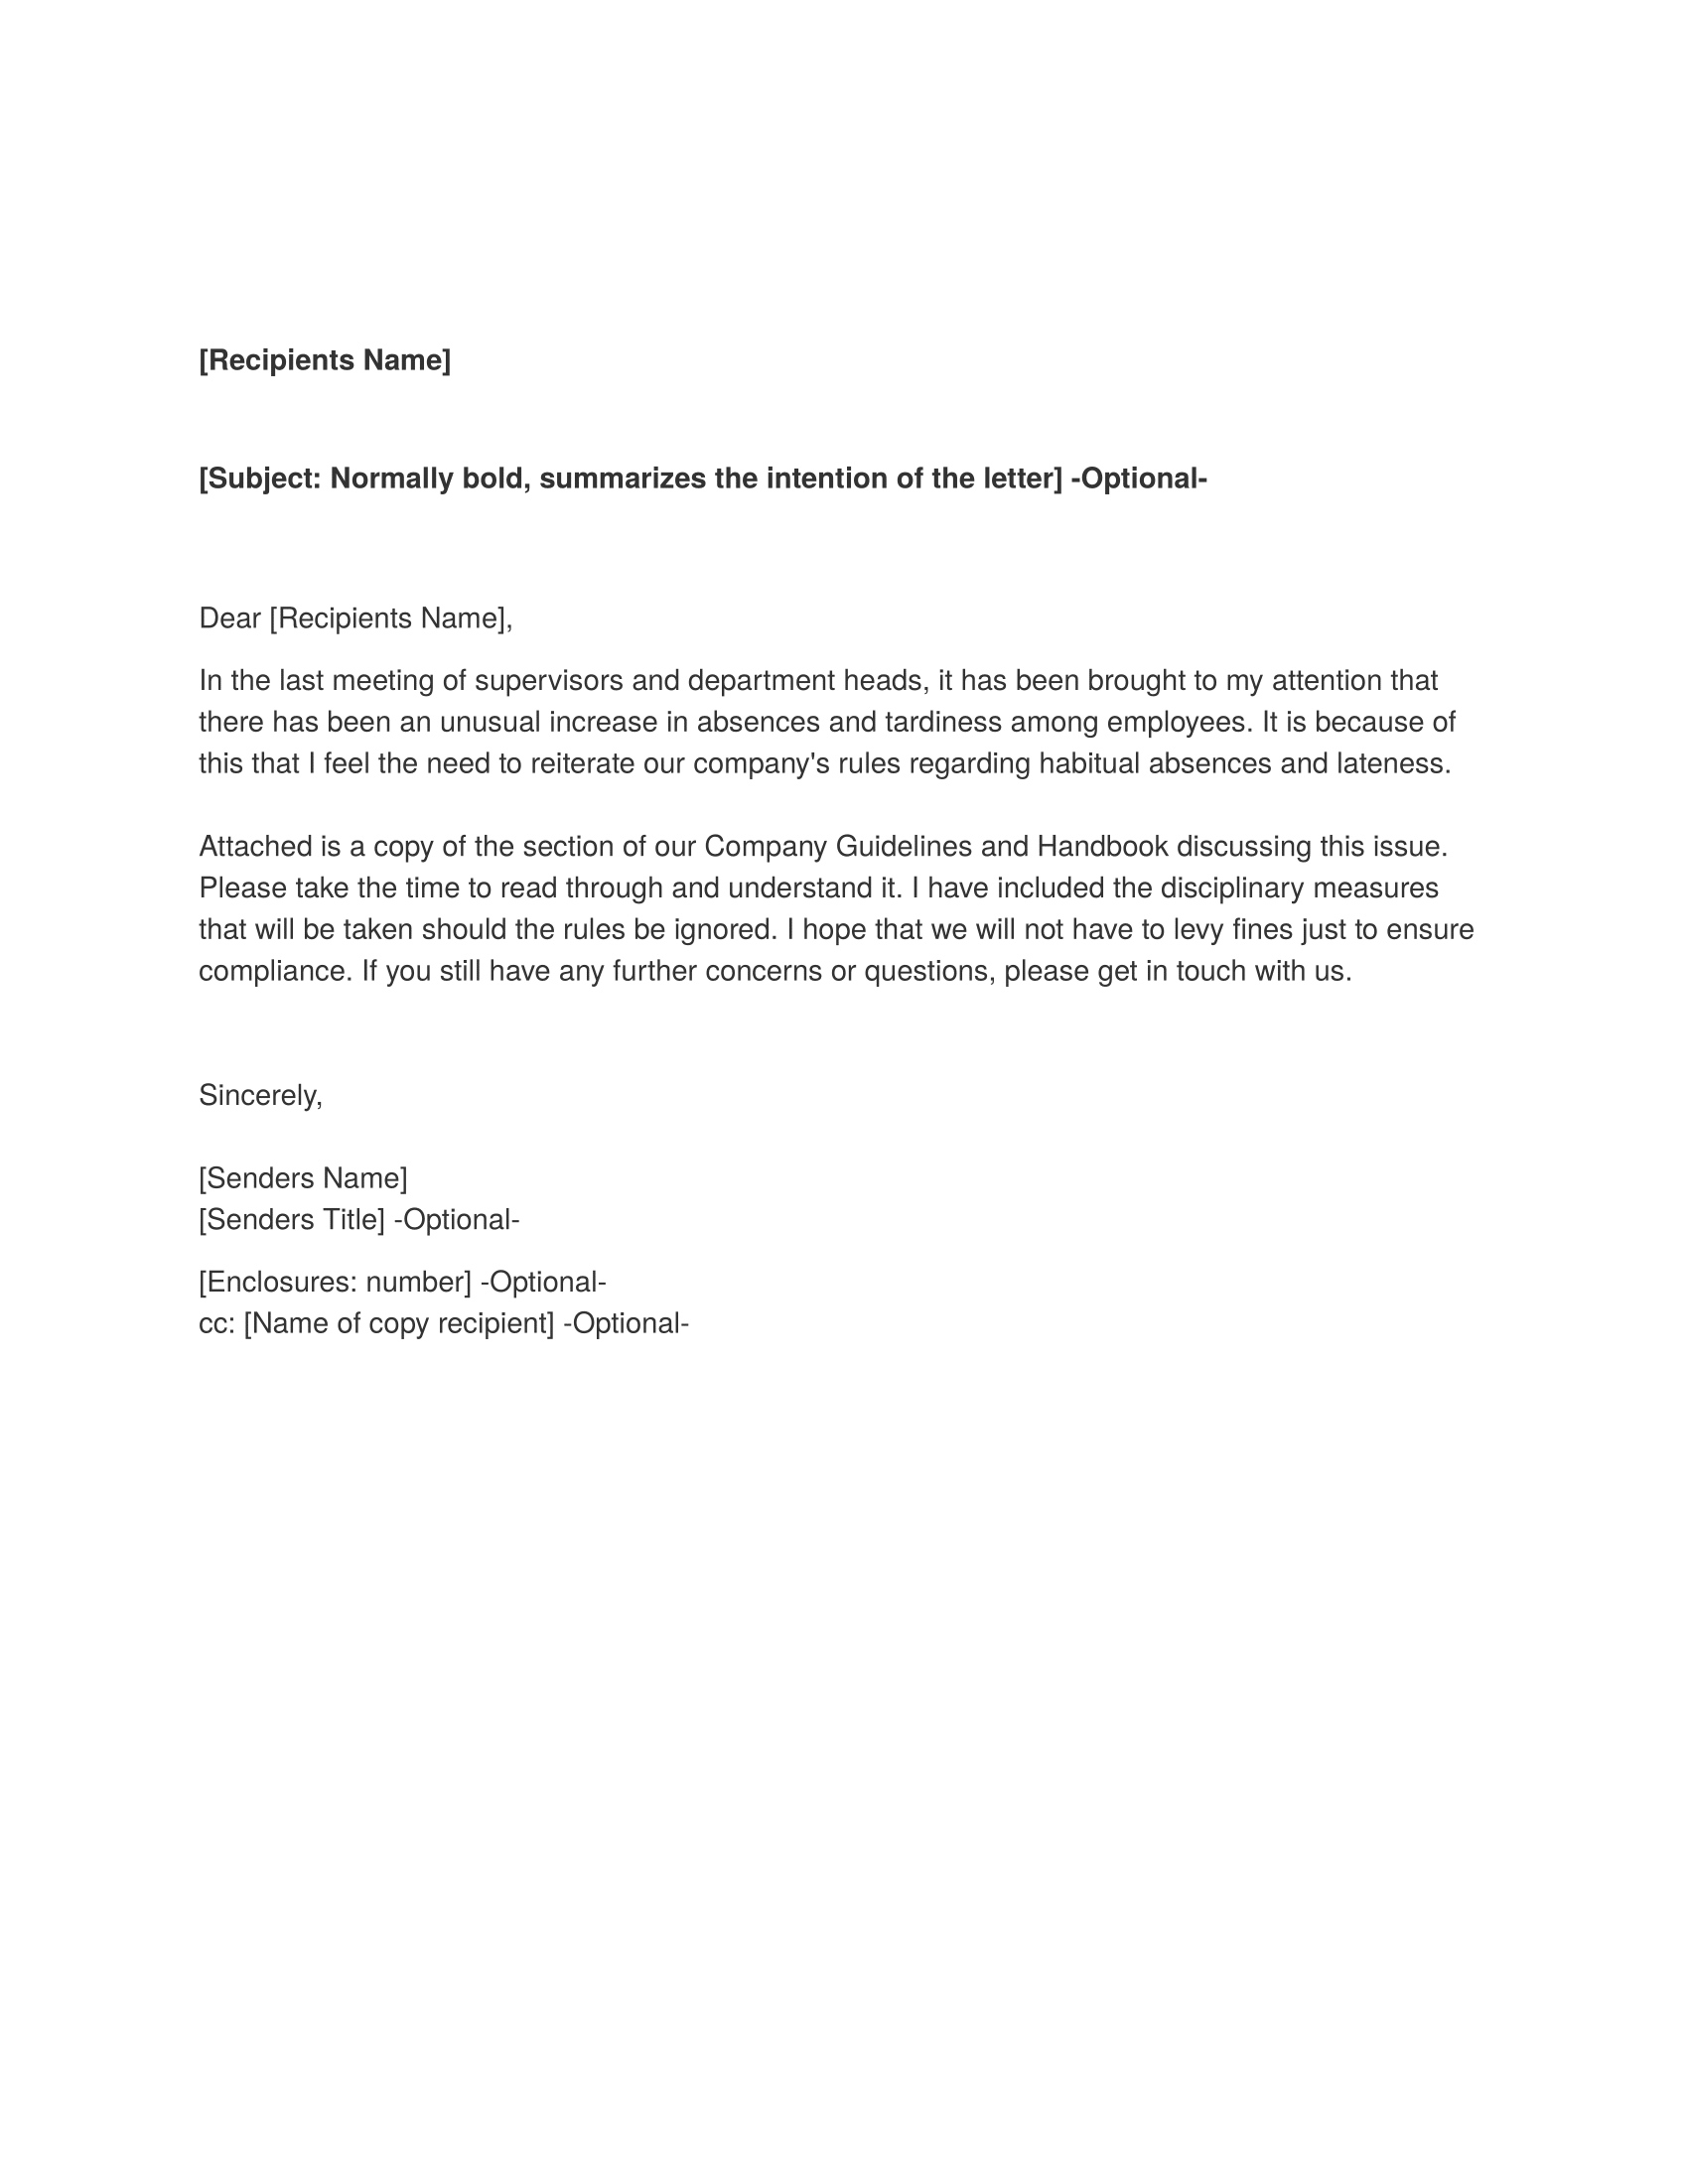 Memorandum - Download FREE Business Letter Templates, Forms, Menus ...